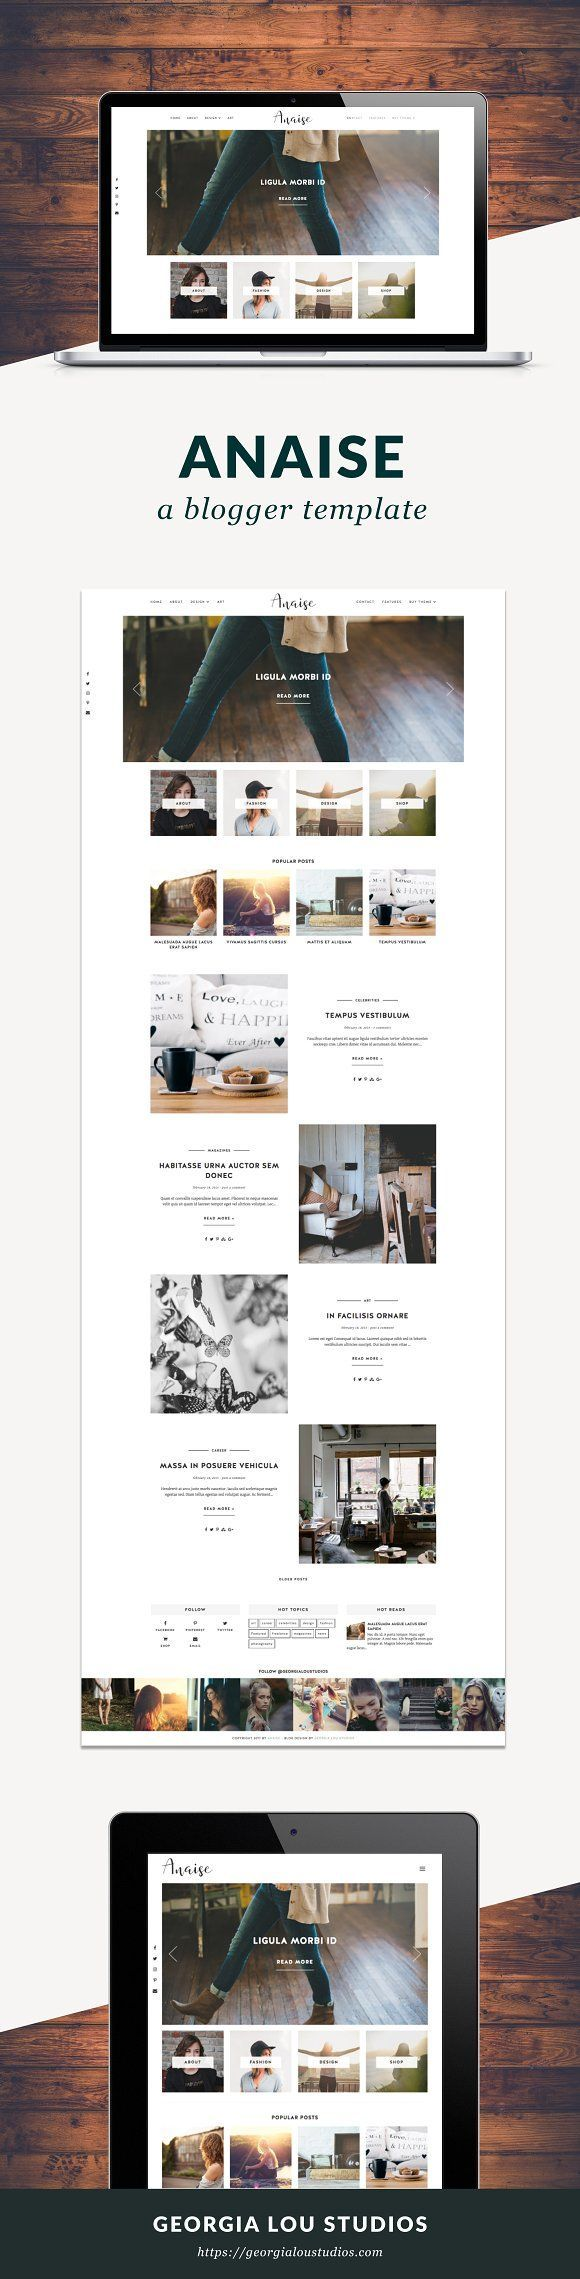 Blogger Template Responsive - Anaise by Georgia Lou Studios on @creativemarket